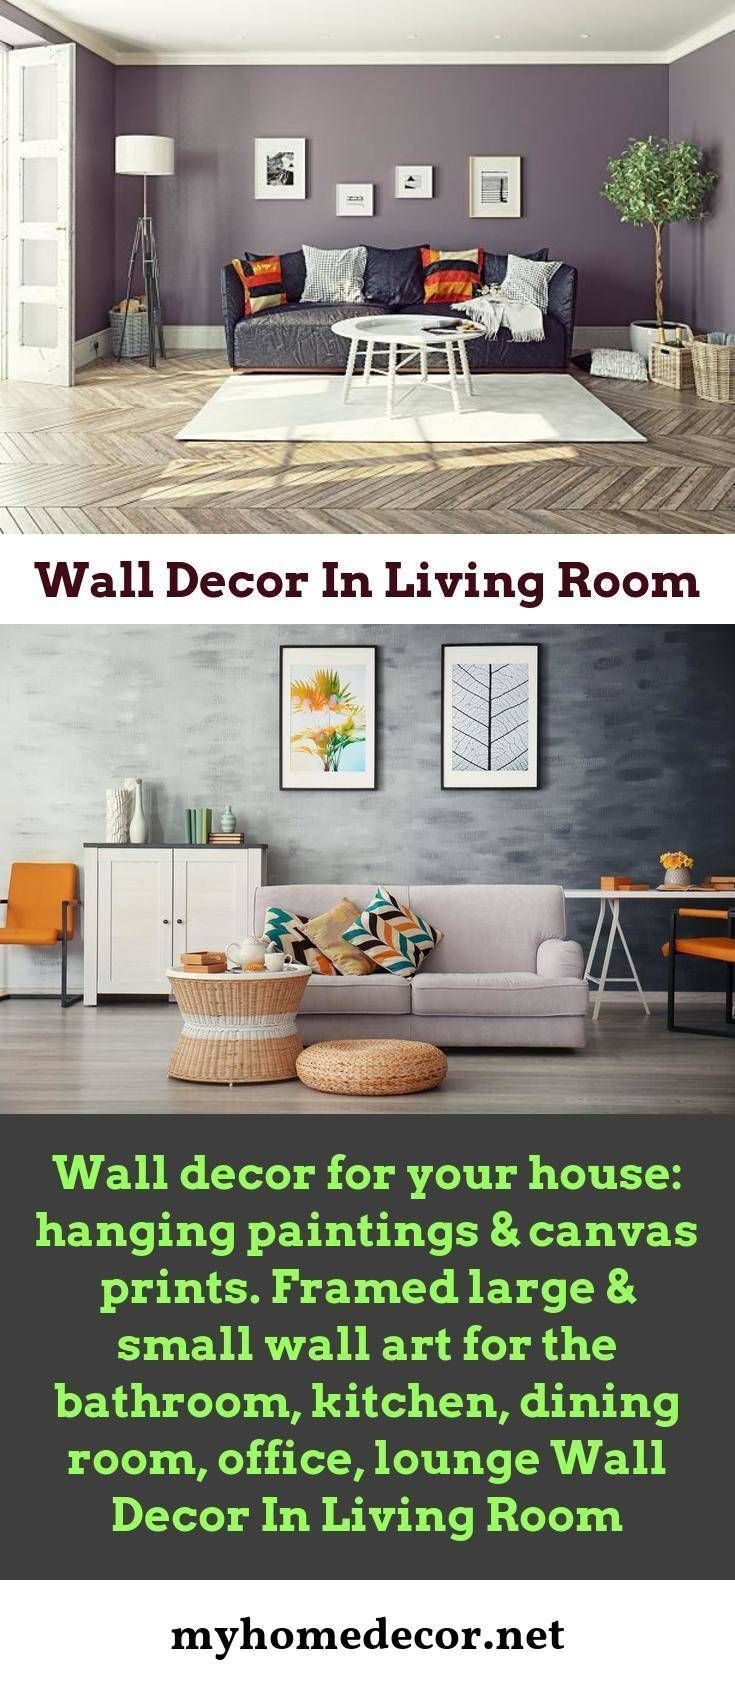 Wall decor for your house hanging paintings u canvas prints framed